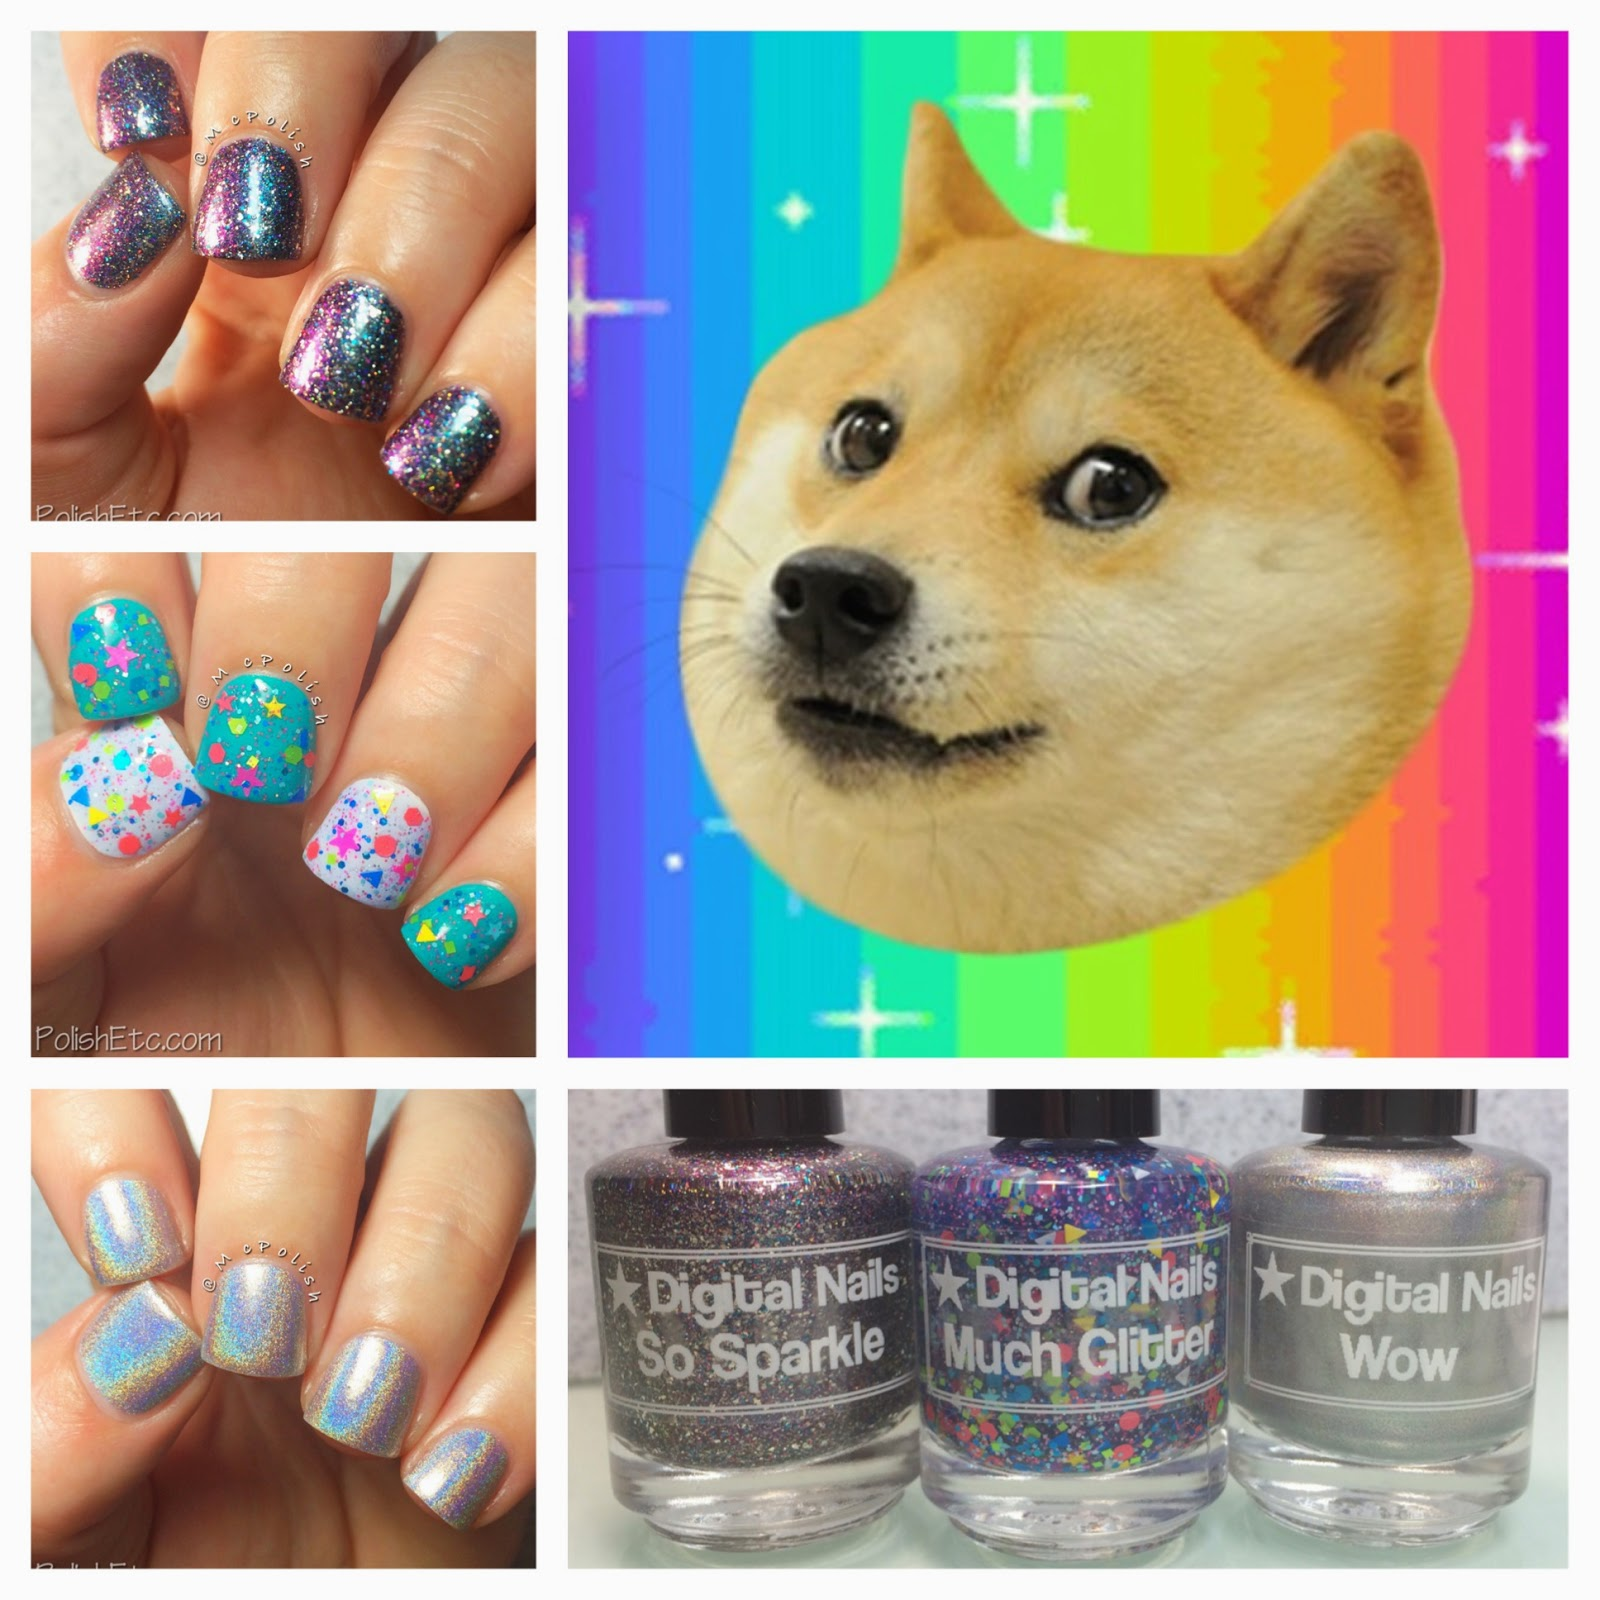 Digital Nails - Doge Trio by McPolish